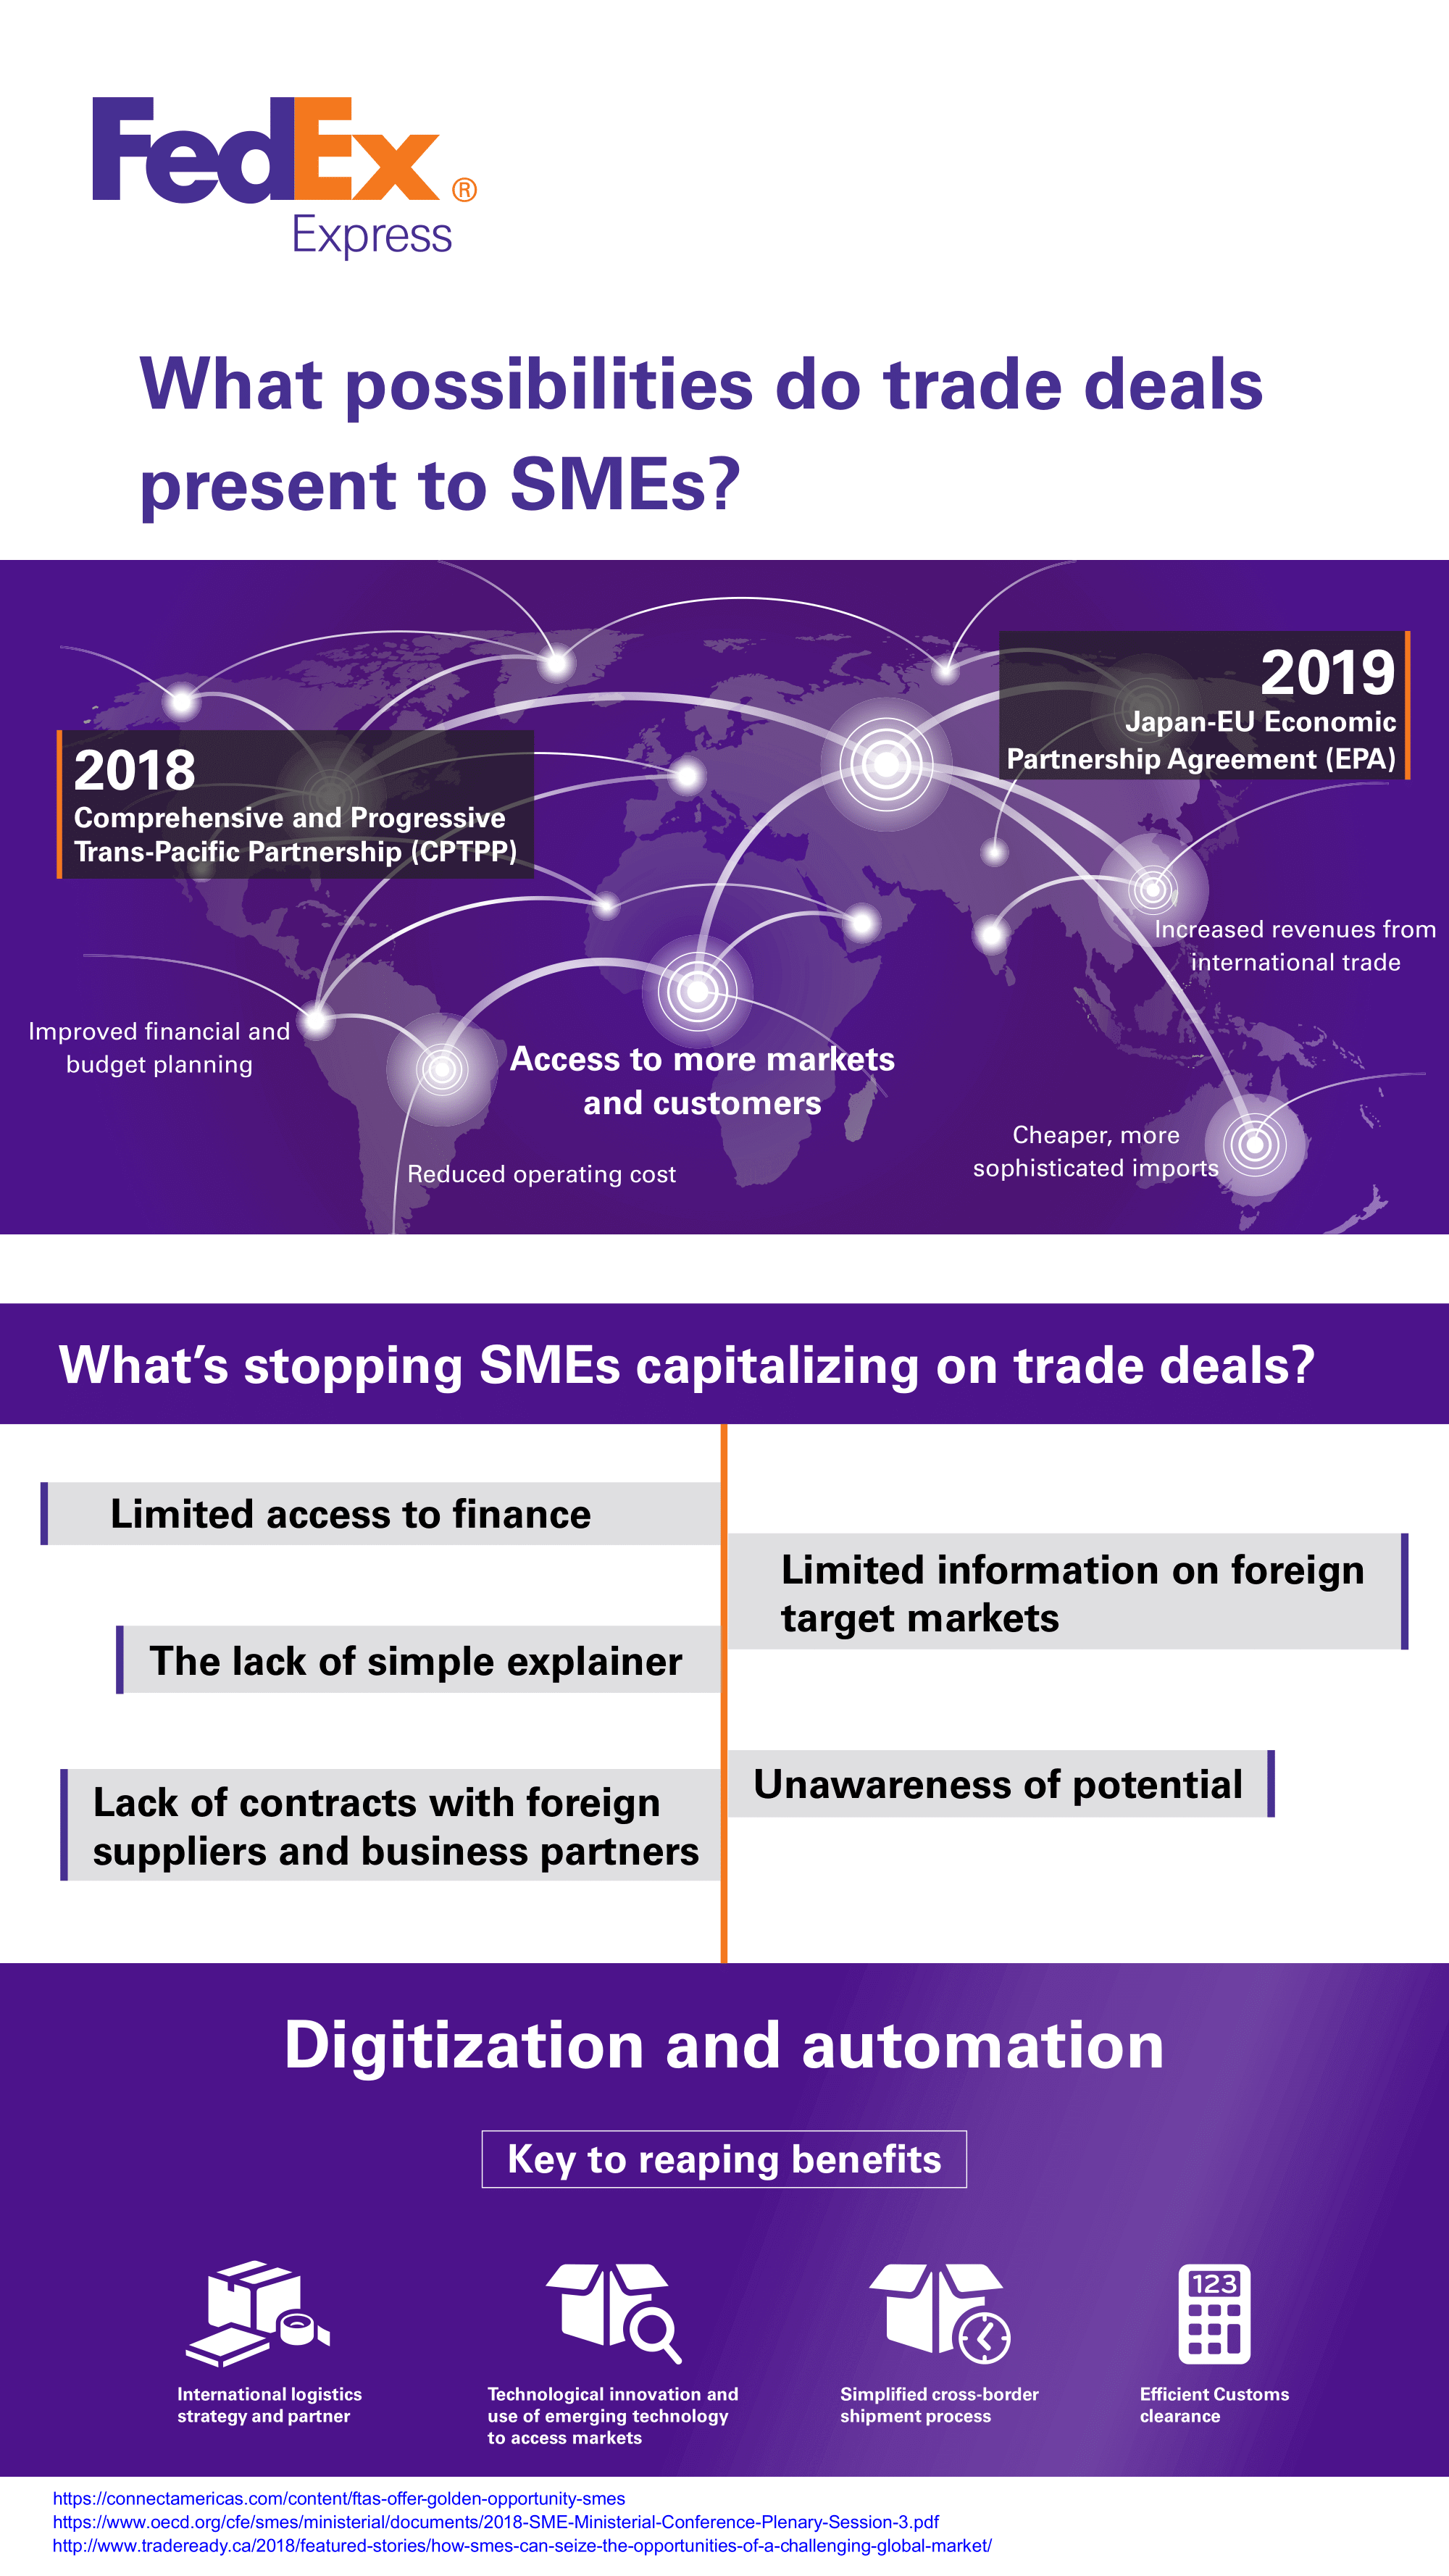 What possibilities do trade deals present to SMEs?